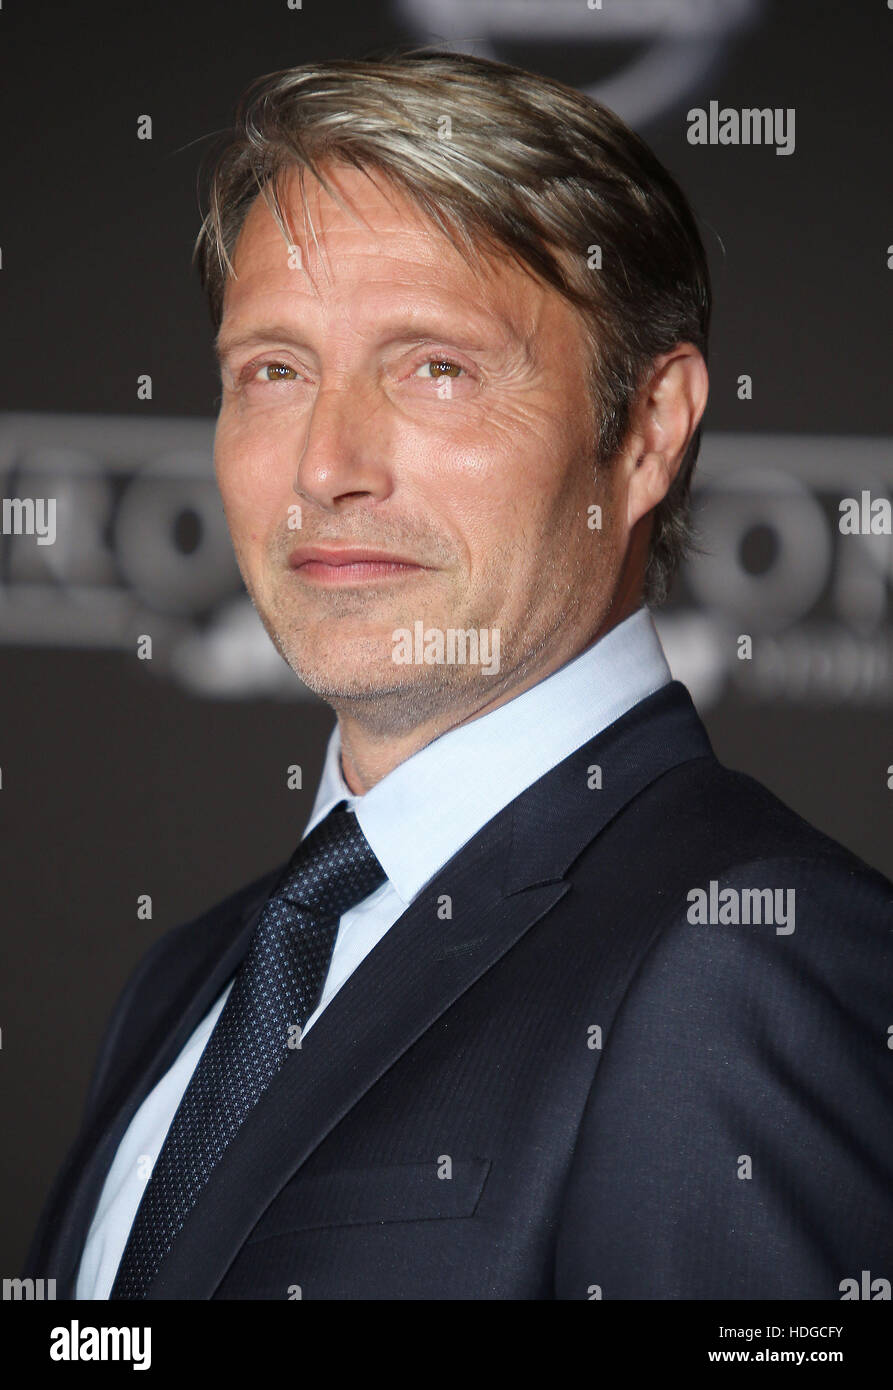 Hollywood, CA, USA. 10. Dezember 2016. 10. Dezember 2016 - Mads Hollywood, Kalifornien - Mikkelsen. '' Eine Stockbild